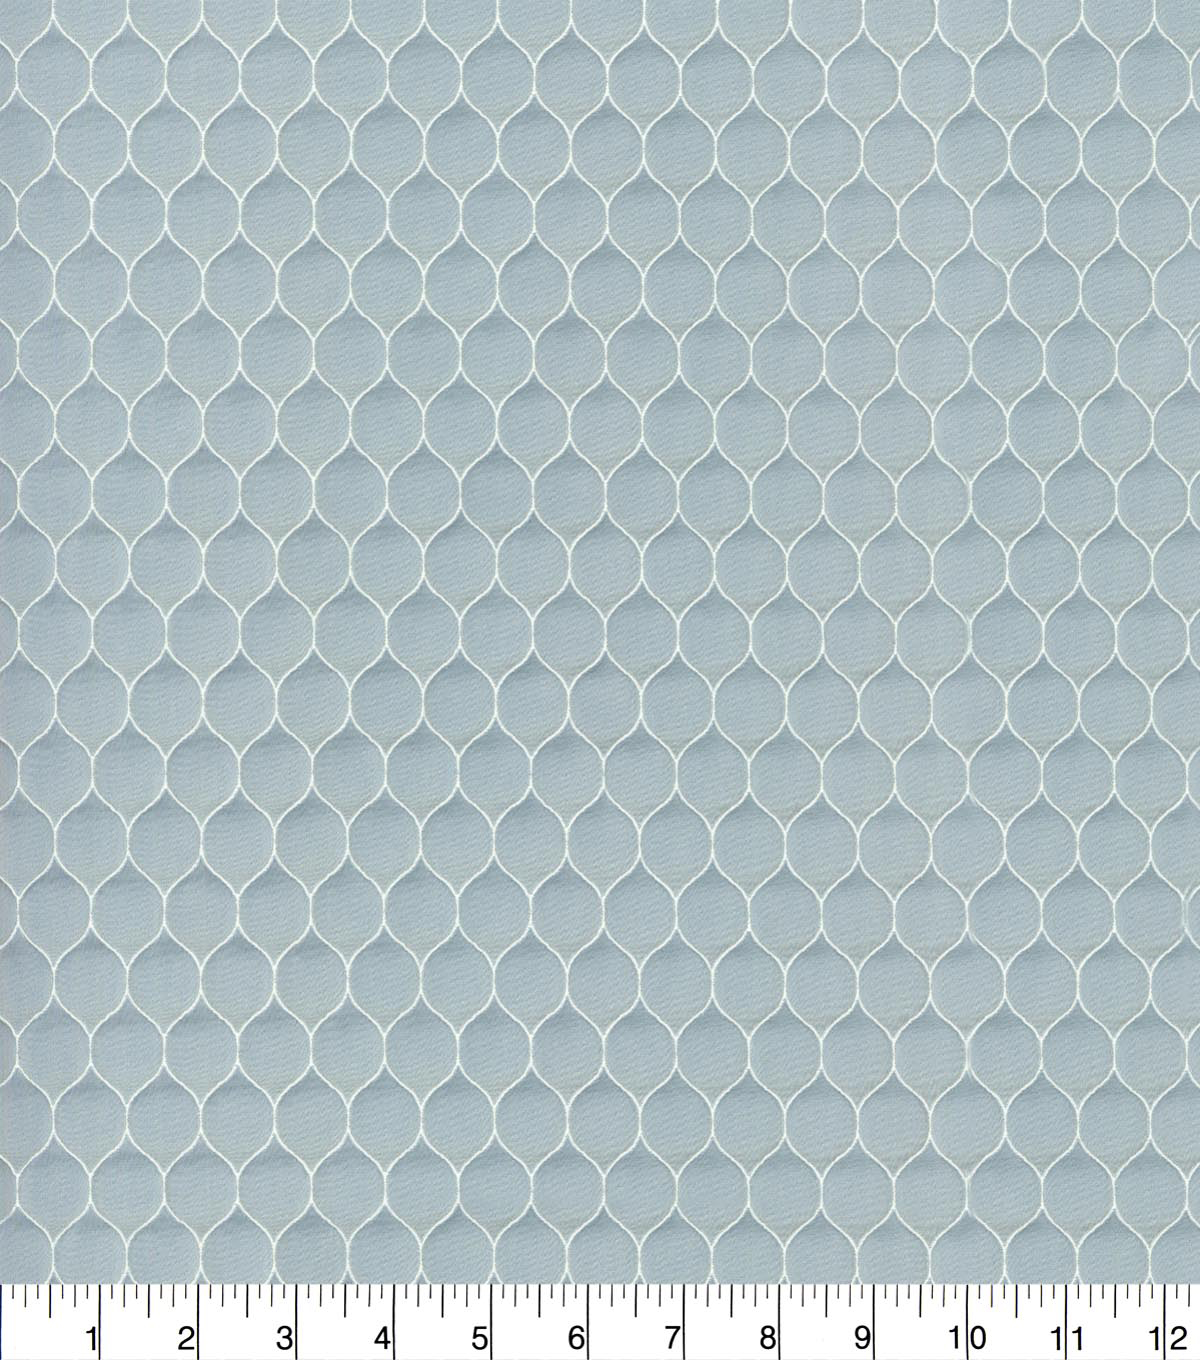 Home Decor 8\u0022x8\u0022 Fabric Swatch-P/K Lifestyles Mermaid Seaglass